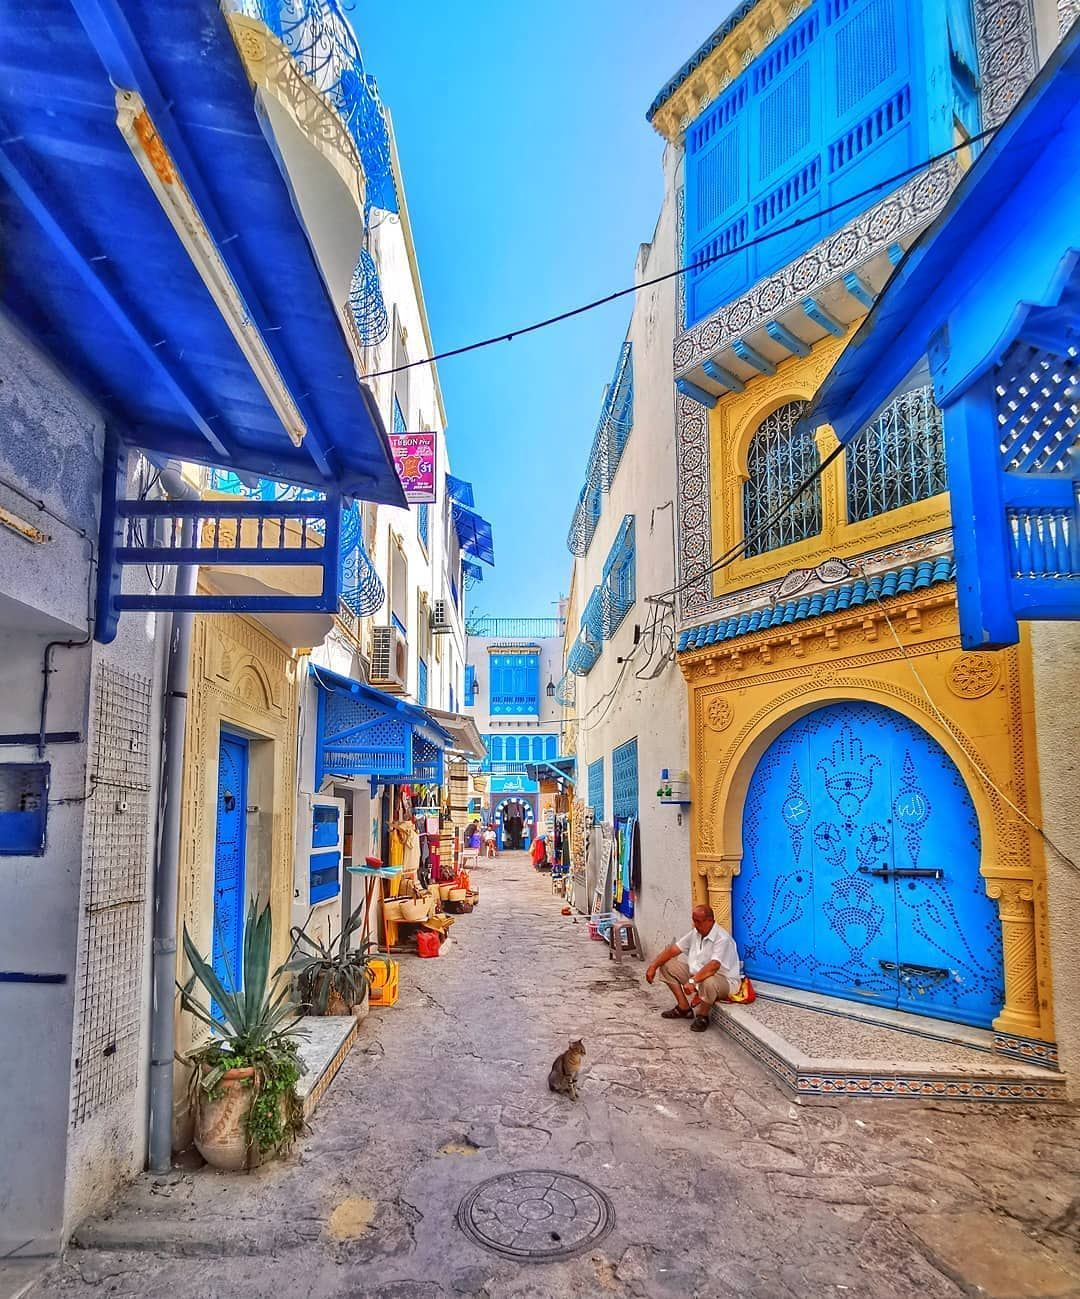 Tunisia Vacations On Instagram When You Get Lost In The Old Medina Of Hammamet You Ll Most Certainly Come Across Streets Like This Tunisia Scenes Hammamet